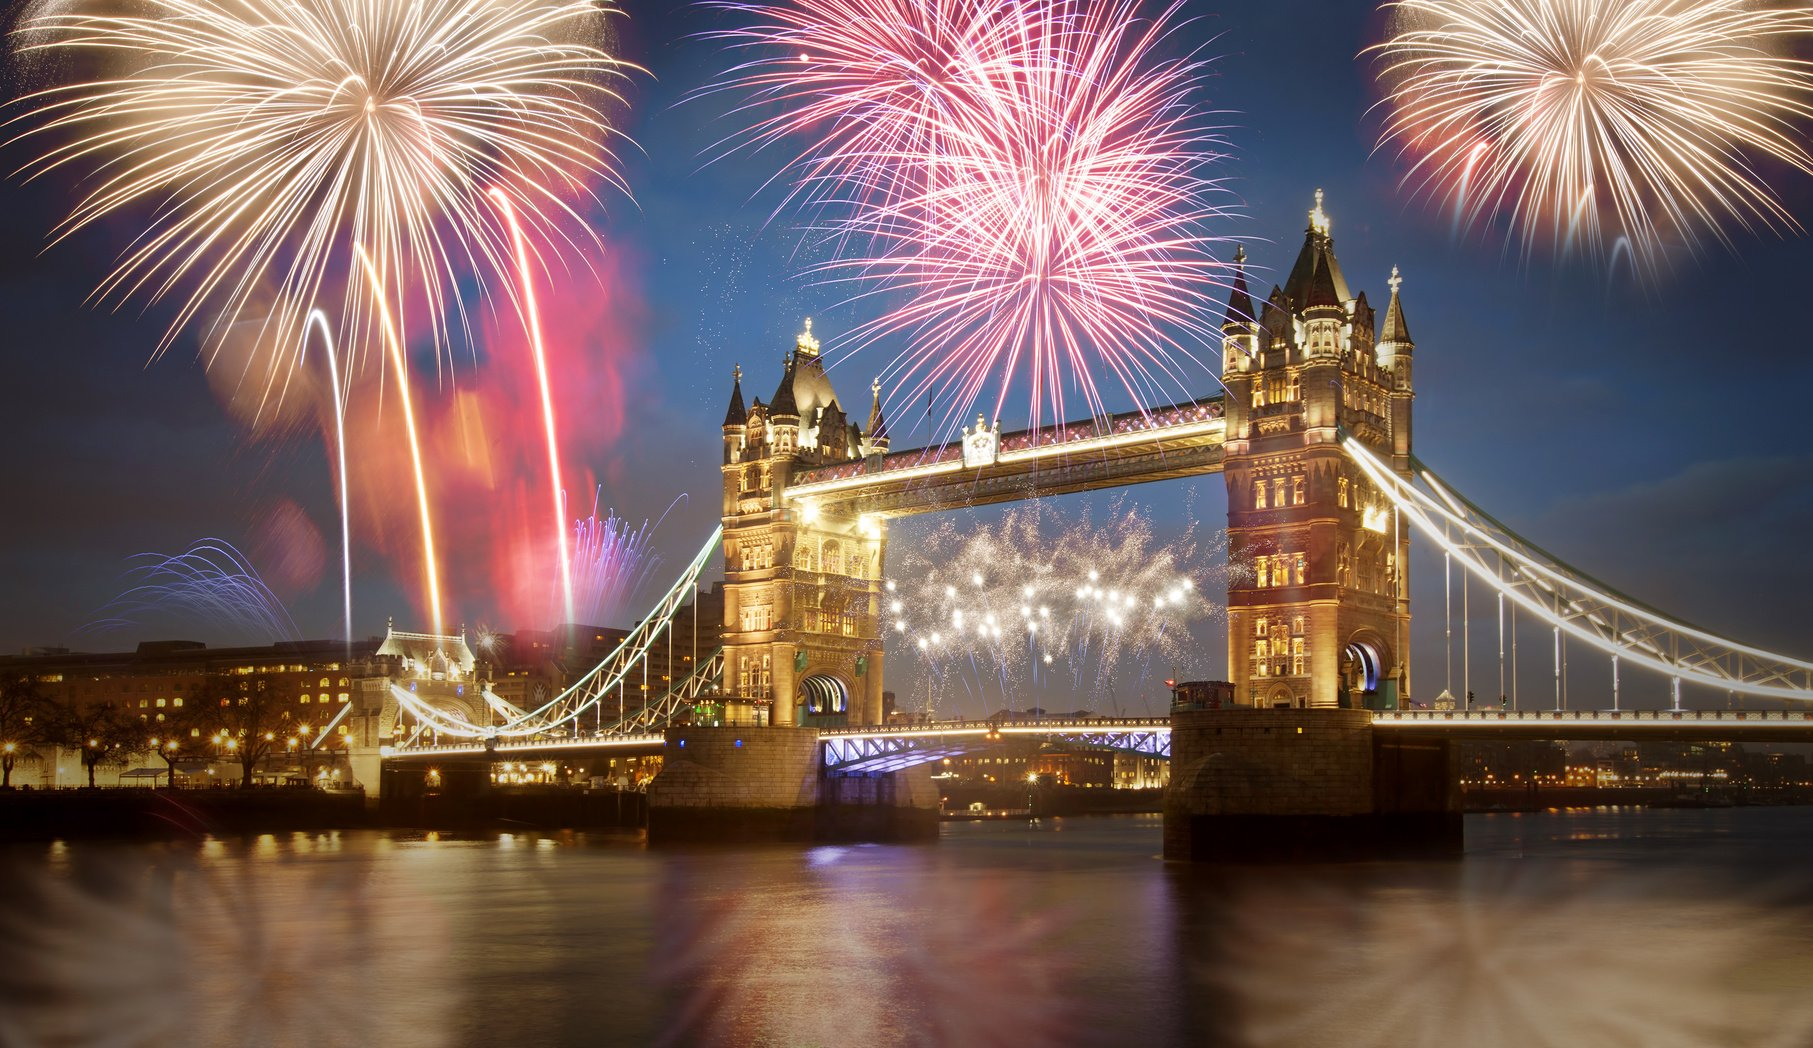 Tower bridge with firework, celebration of the New Year in London, UK.